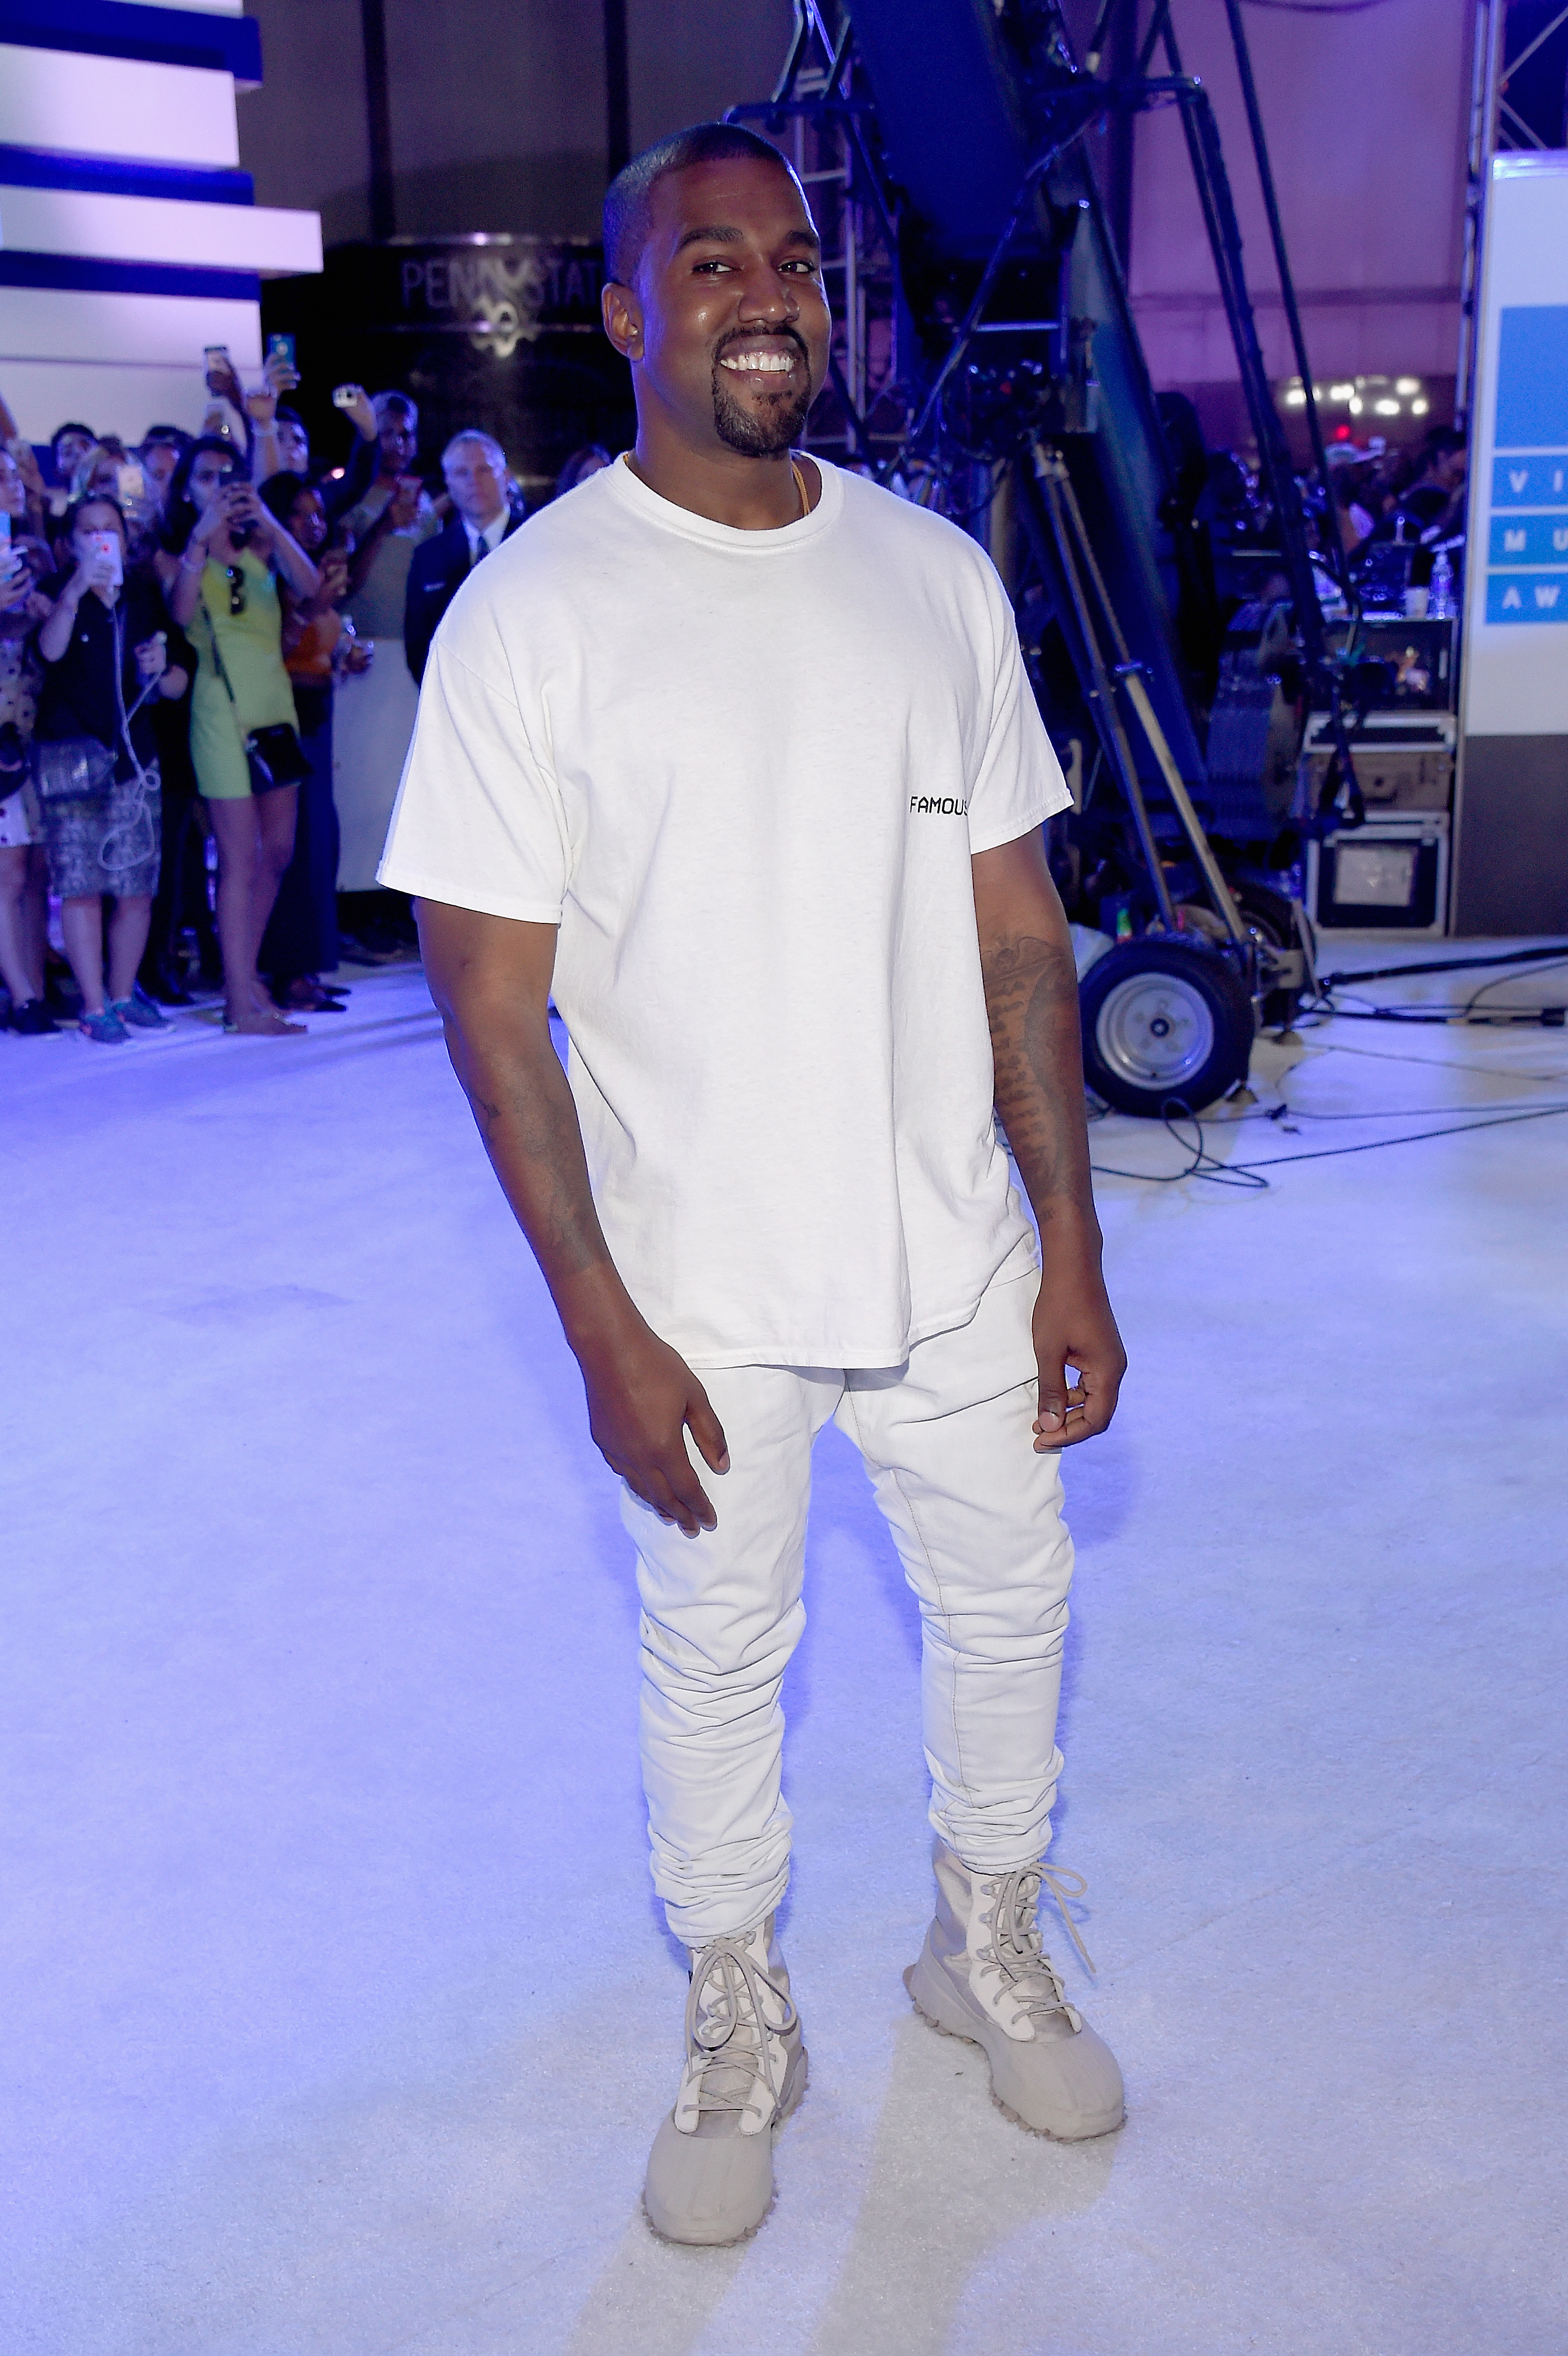 Fans urge Kanye West to run in 2020